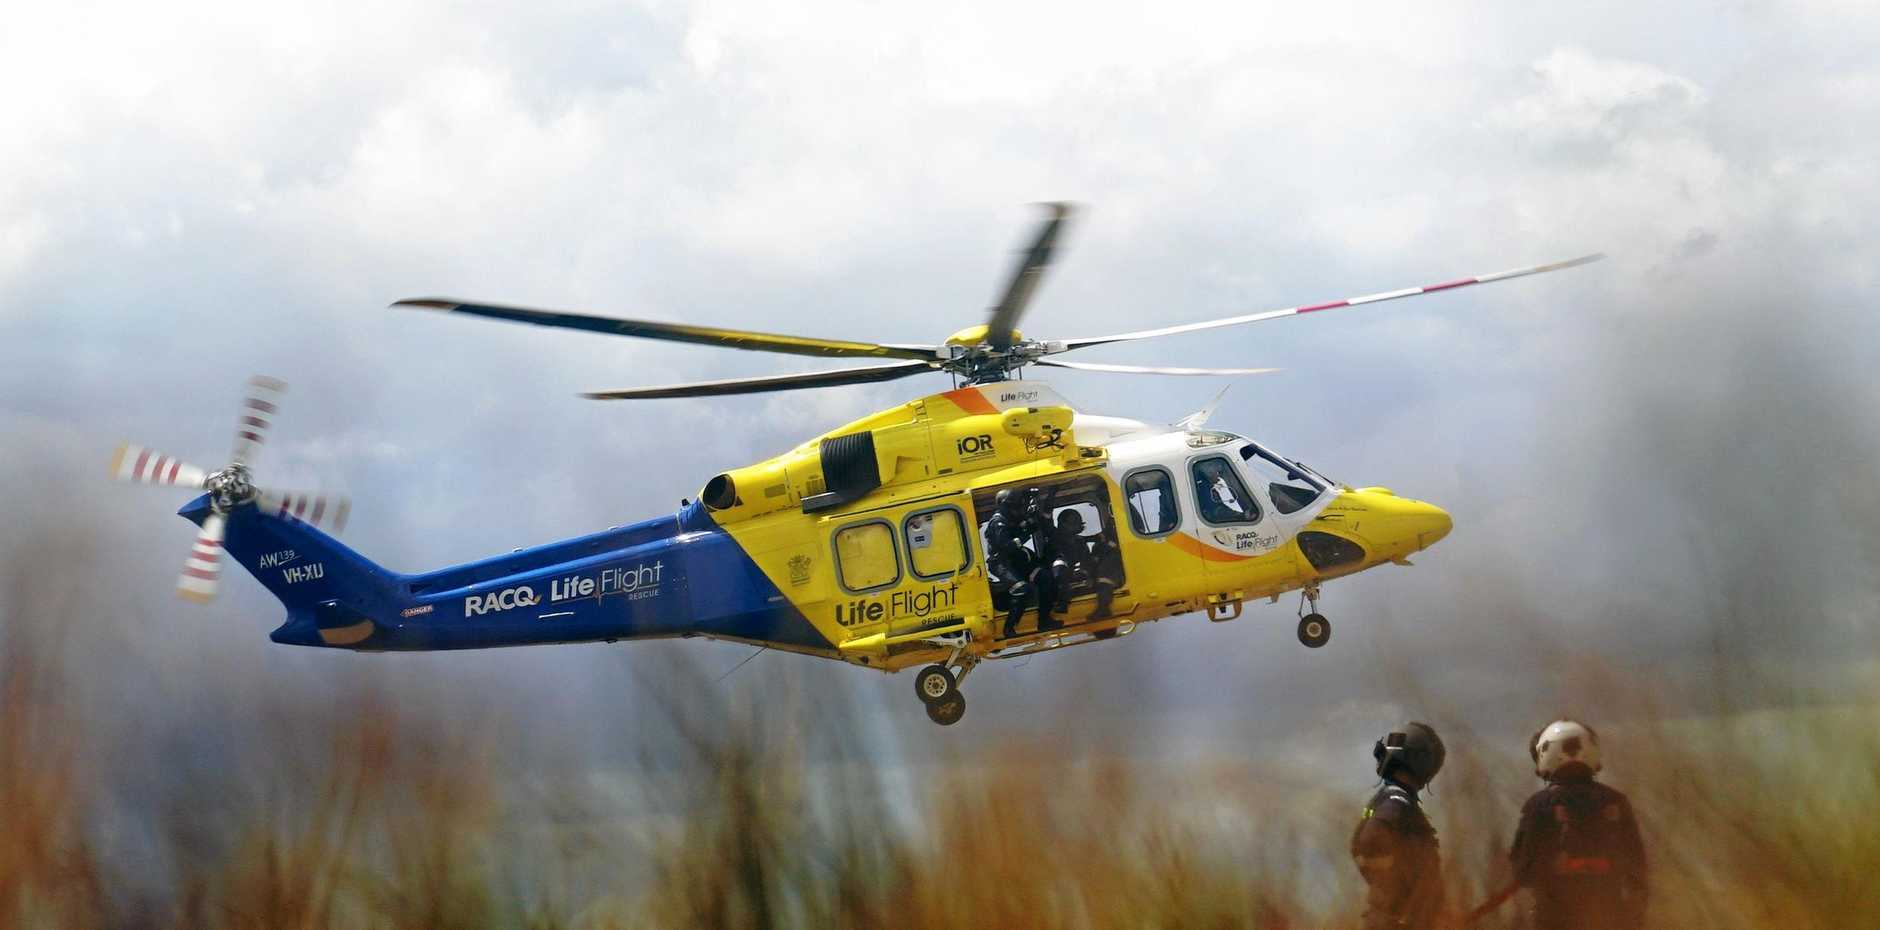 CRASH: Three people are being transported by helicopter from Eidsvold to Bundaberg hospital.